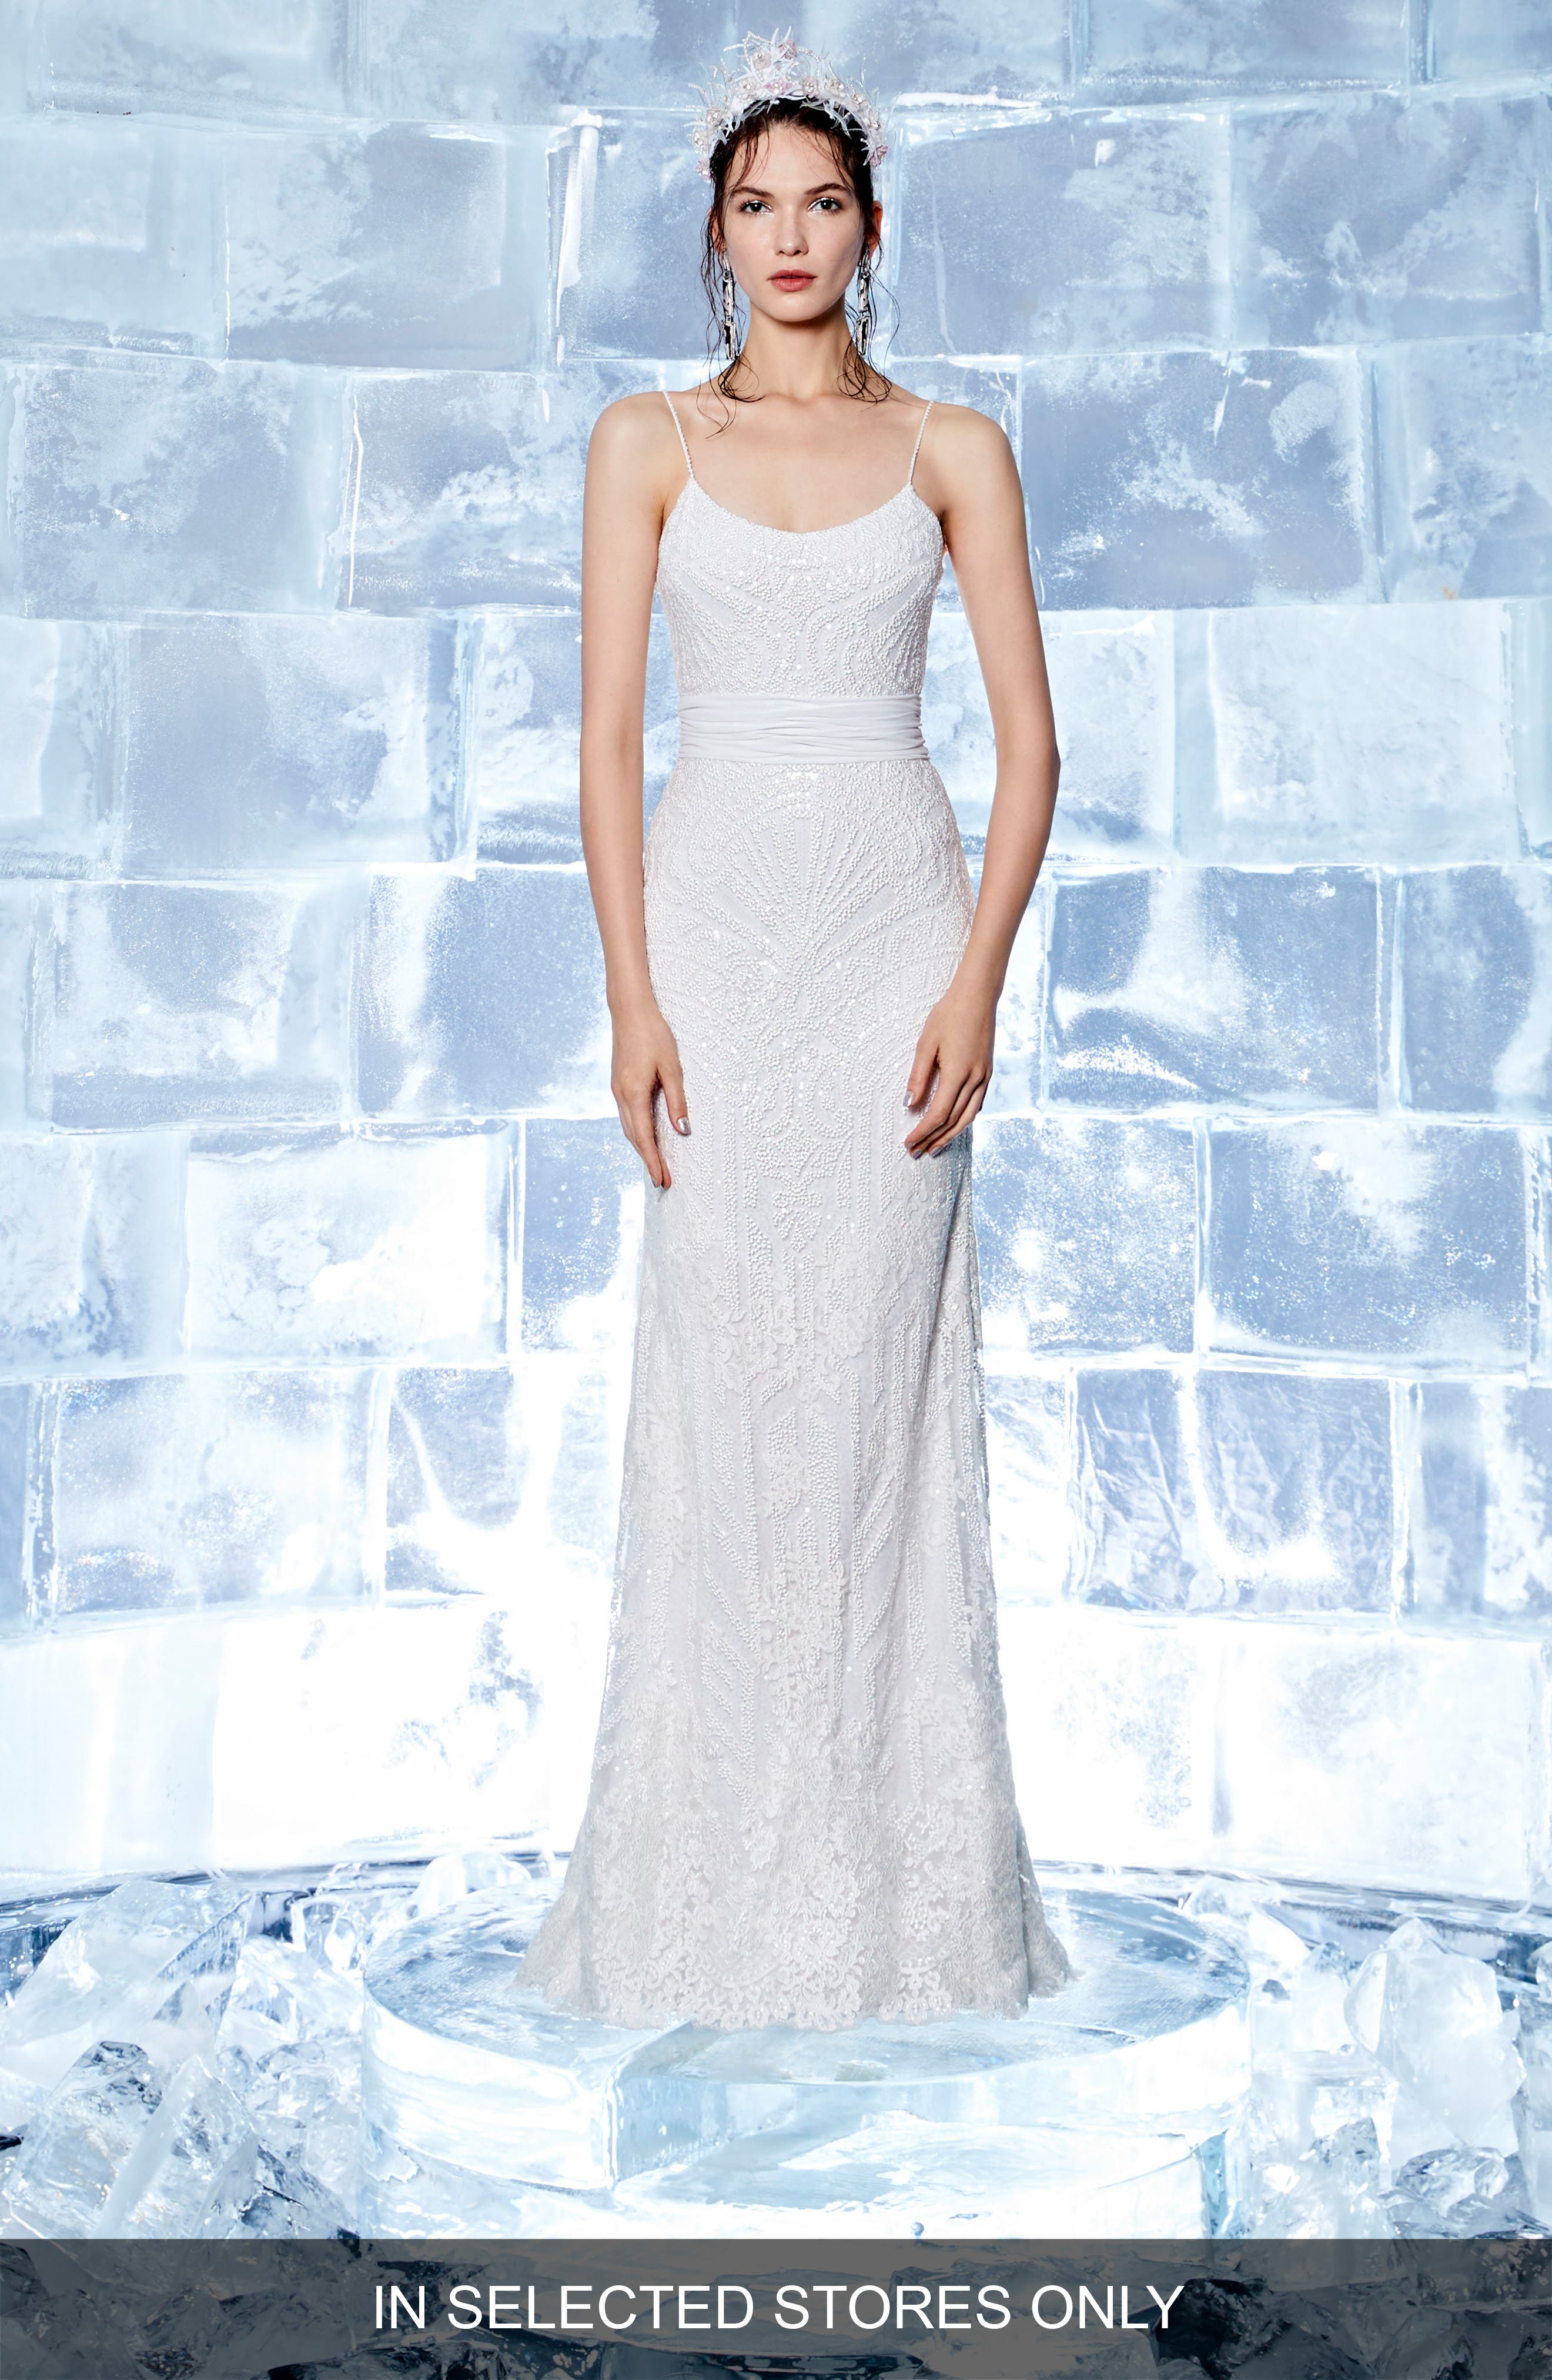 Ines by Ines Di Santo Iclyn Beaded Slipgown